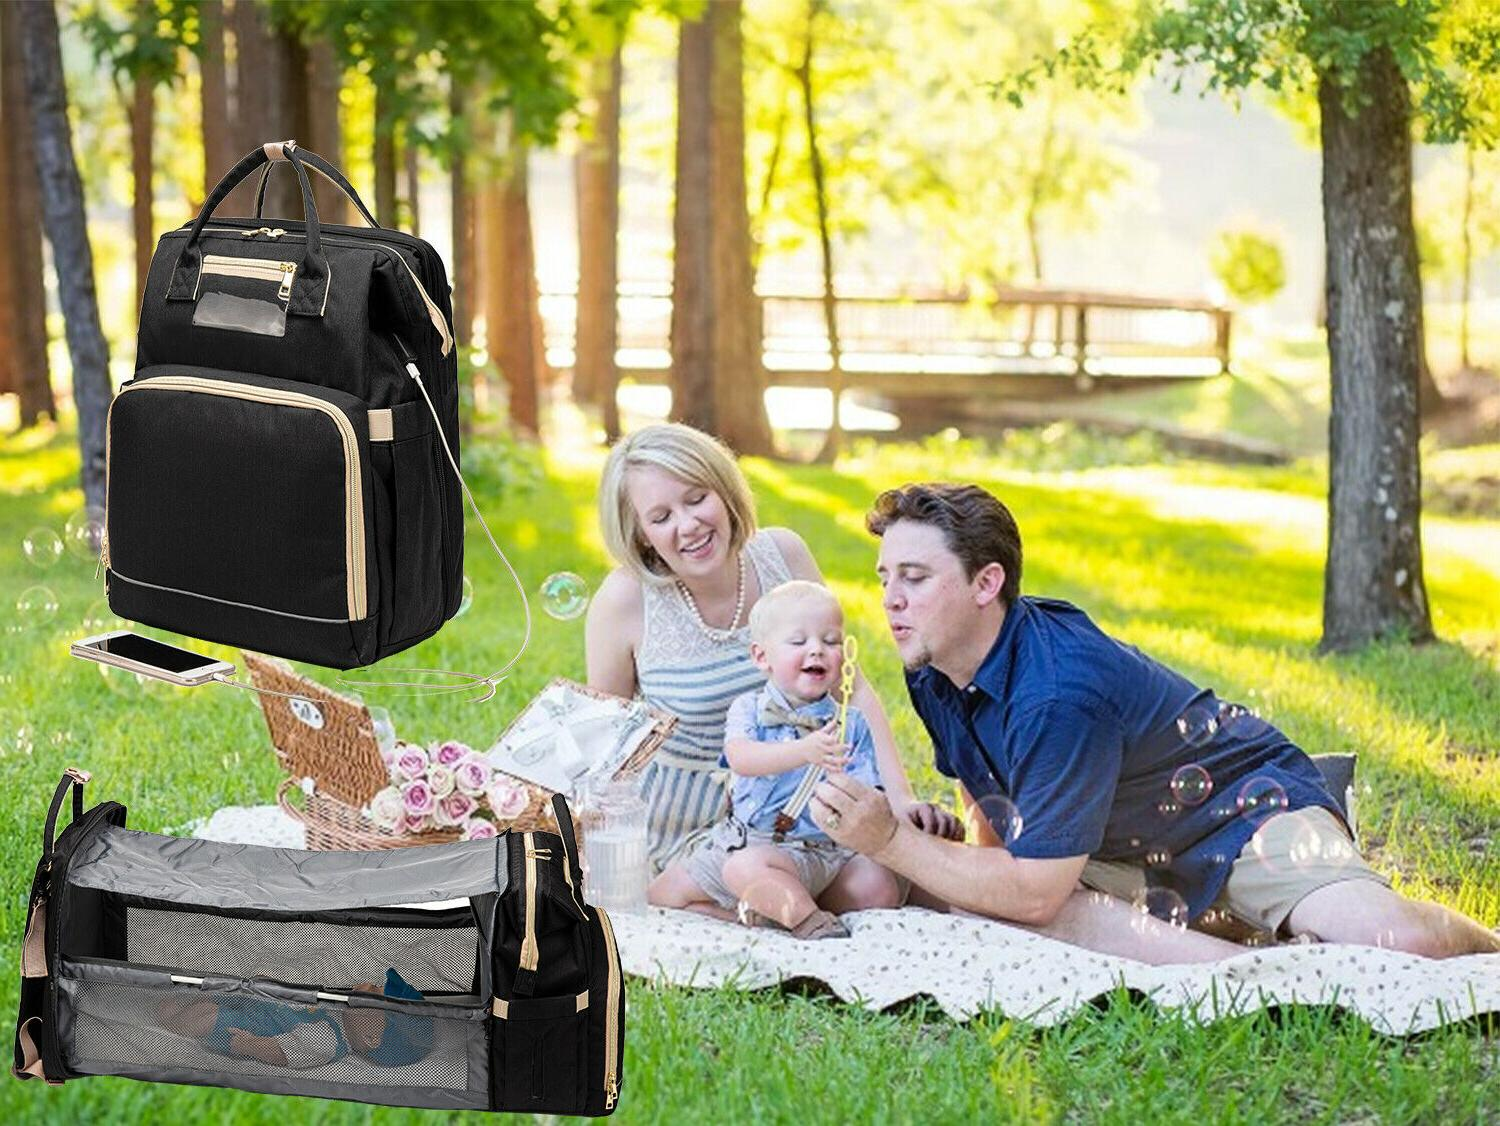 5-in-1 Travel Bassinet Foldable Baby